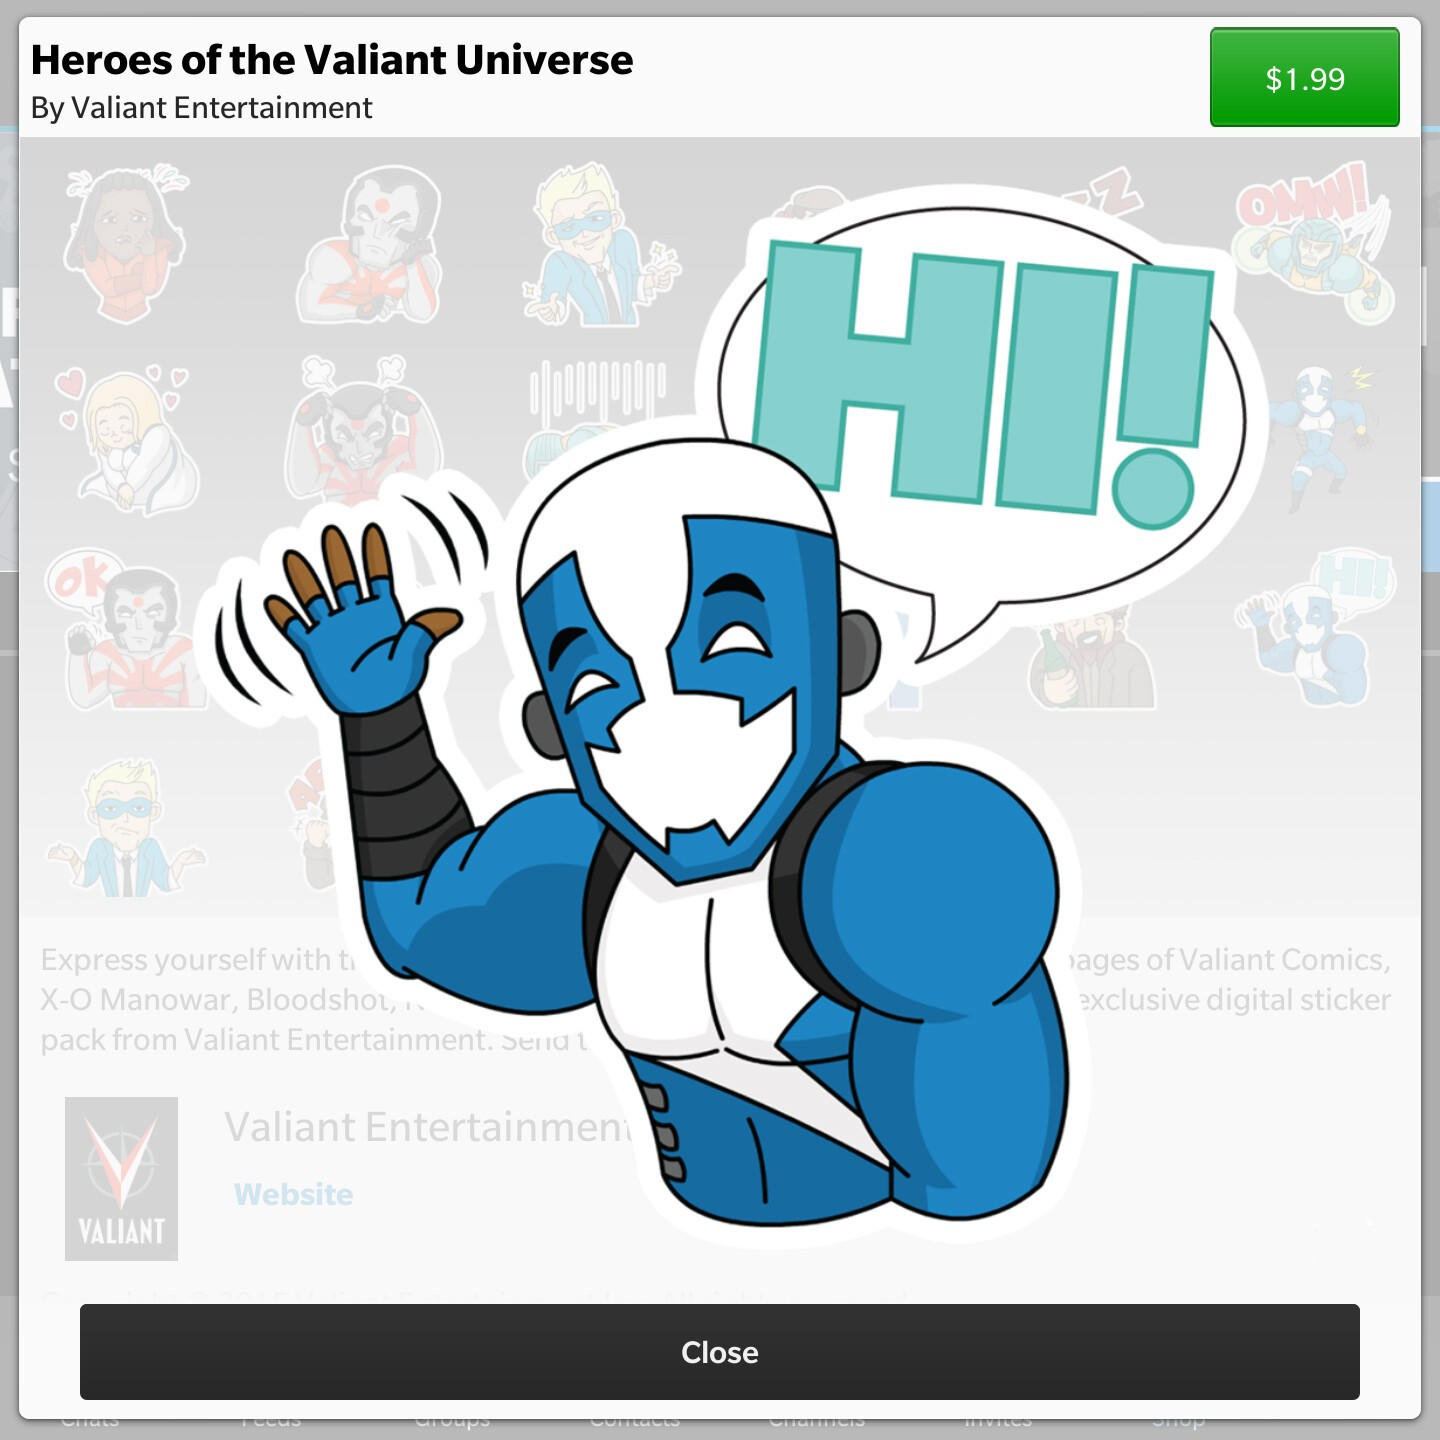 Heroes Of The Valiant Universe BBM sticker pack now available